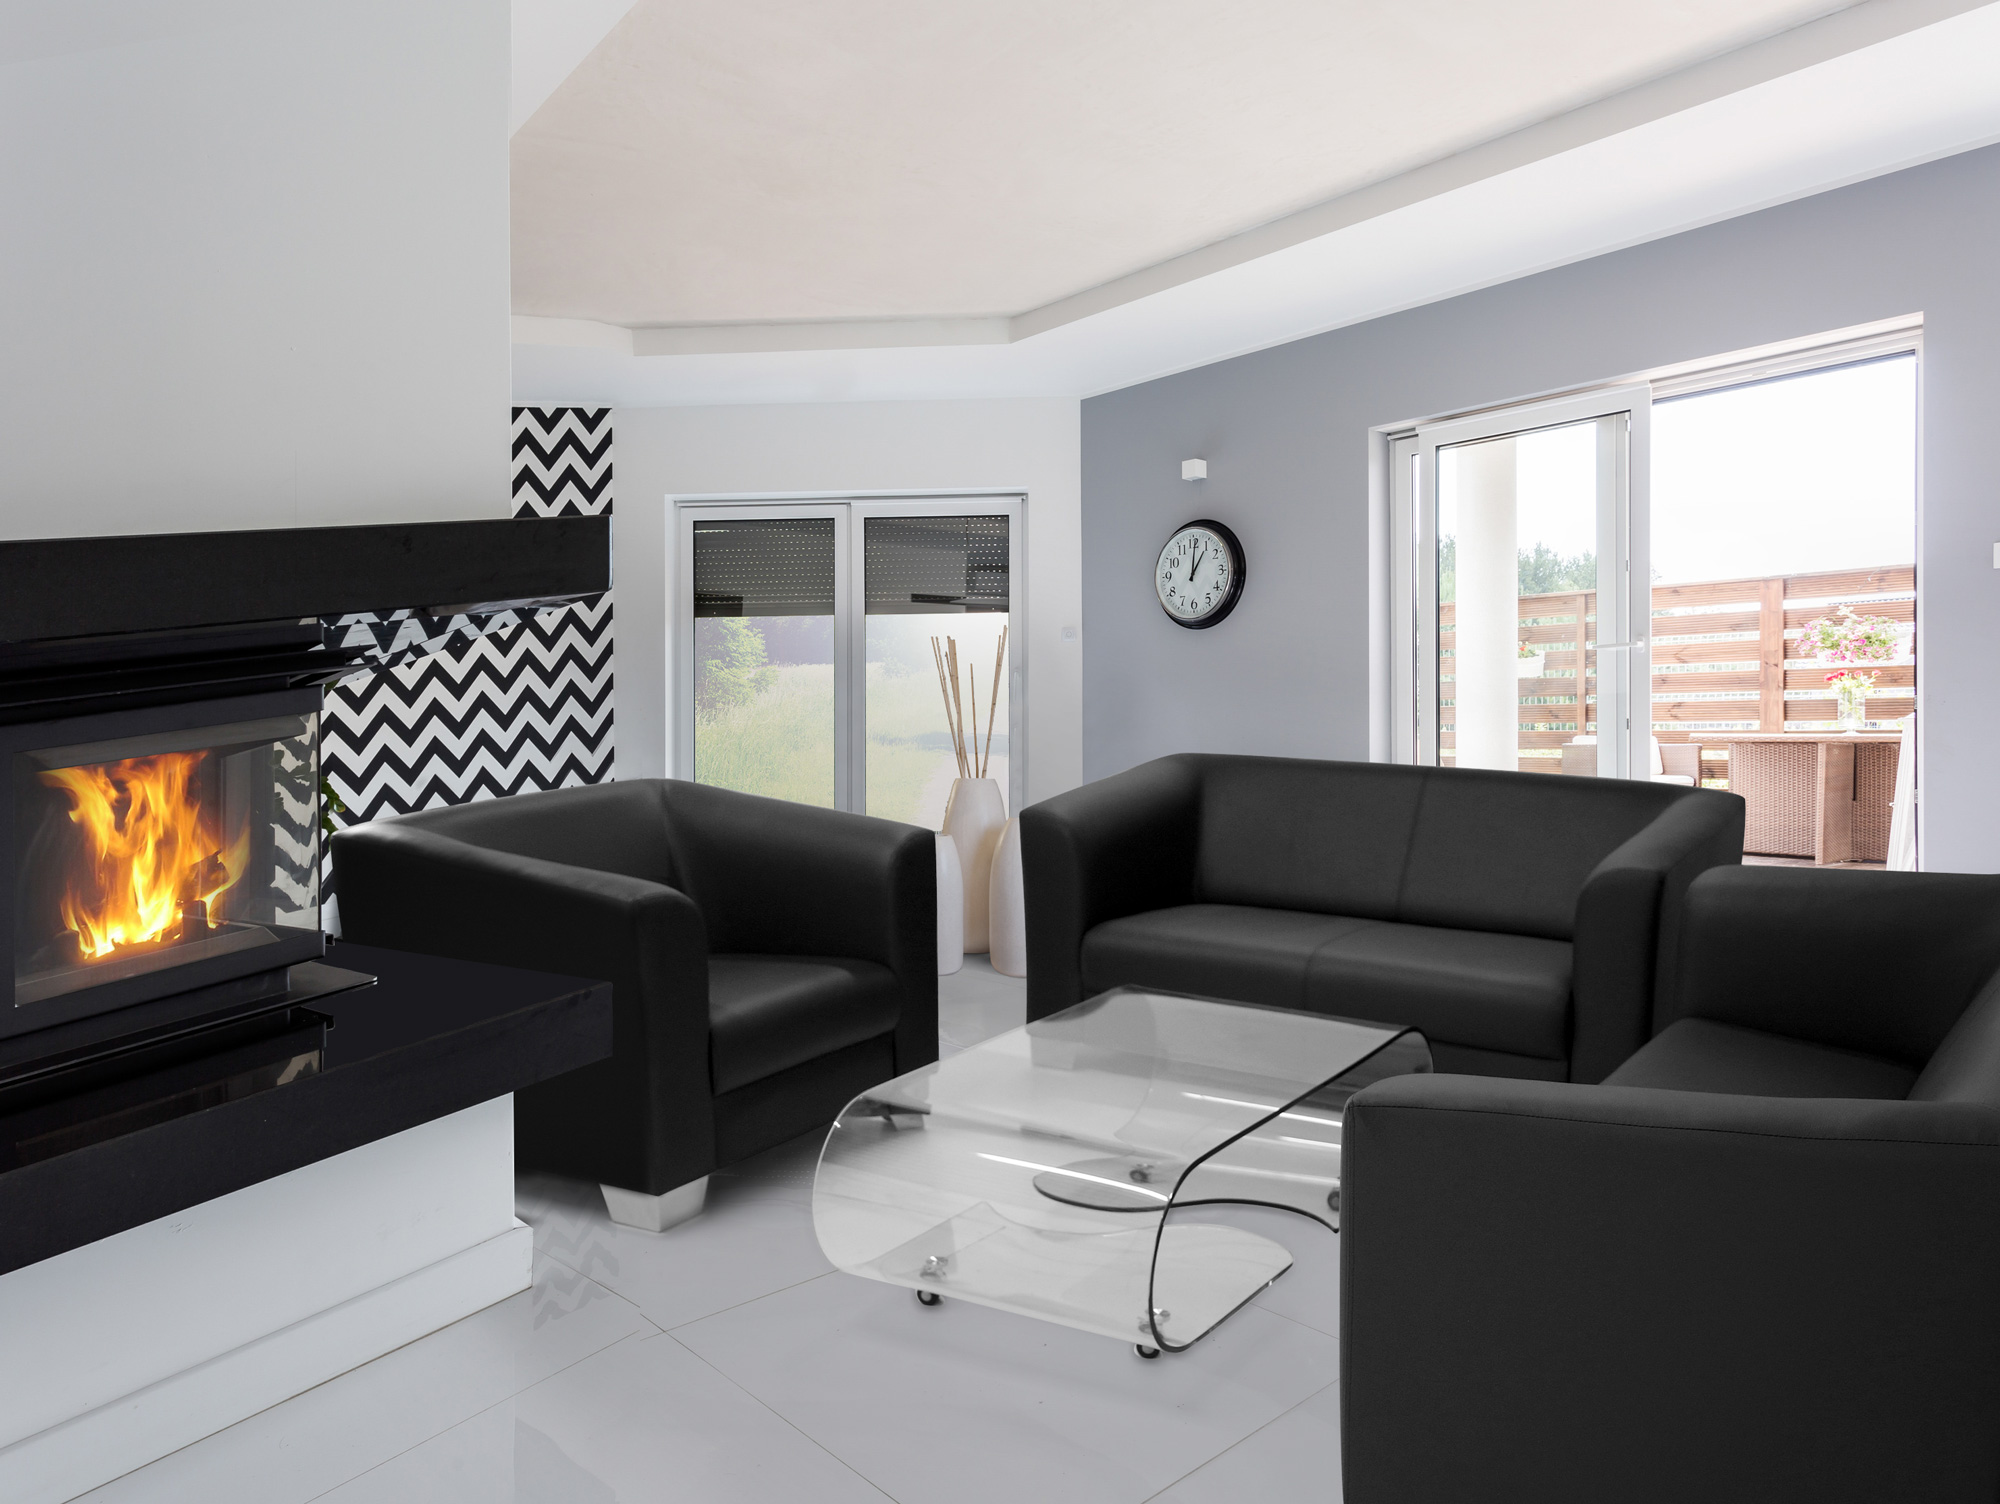 chicago sessel webstoff berlin schwarz. Black Bedroom Furniture Sets. Home Design Ideas